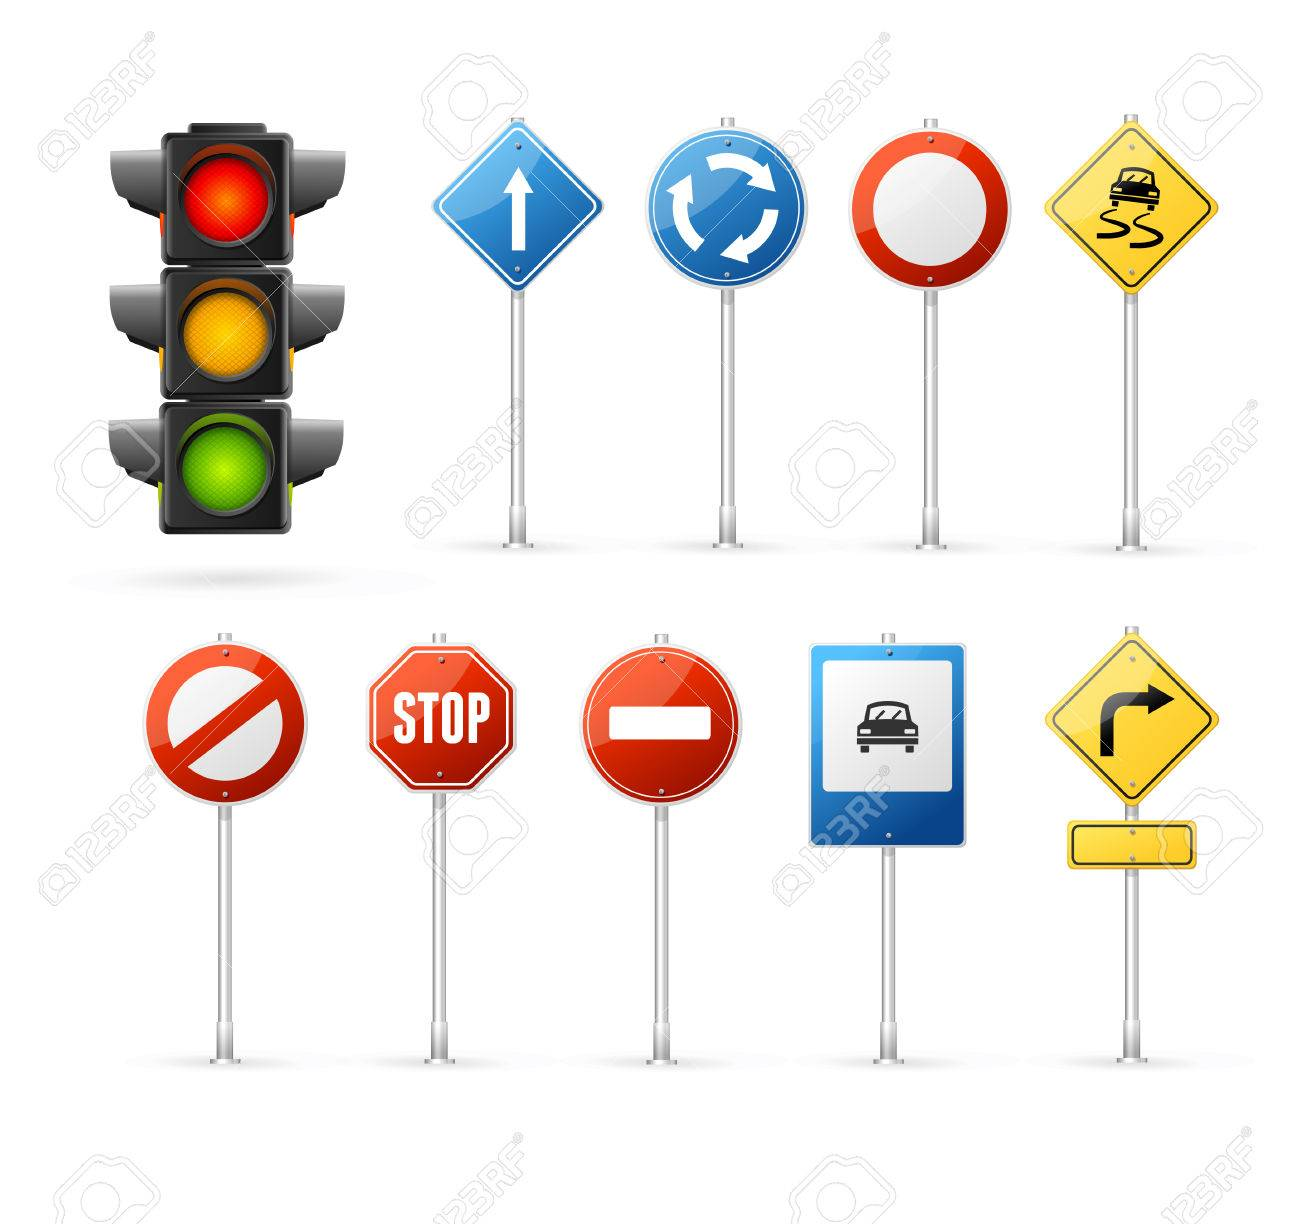 Traffic Light and Road Sign Set. - 52132227